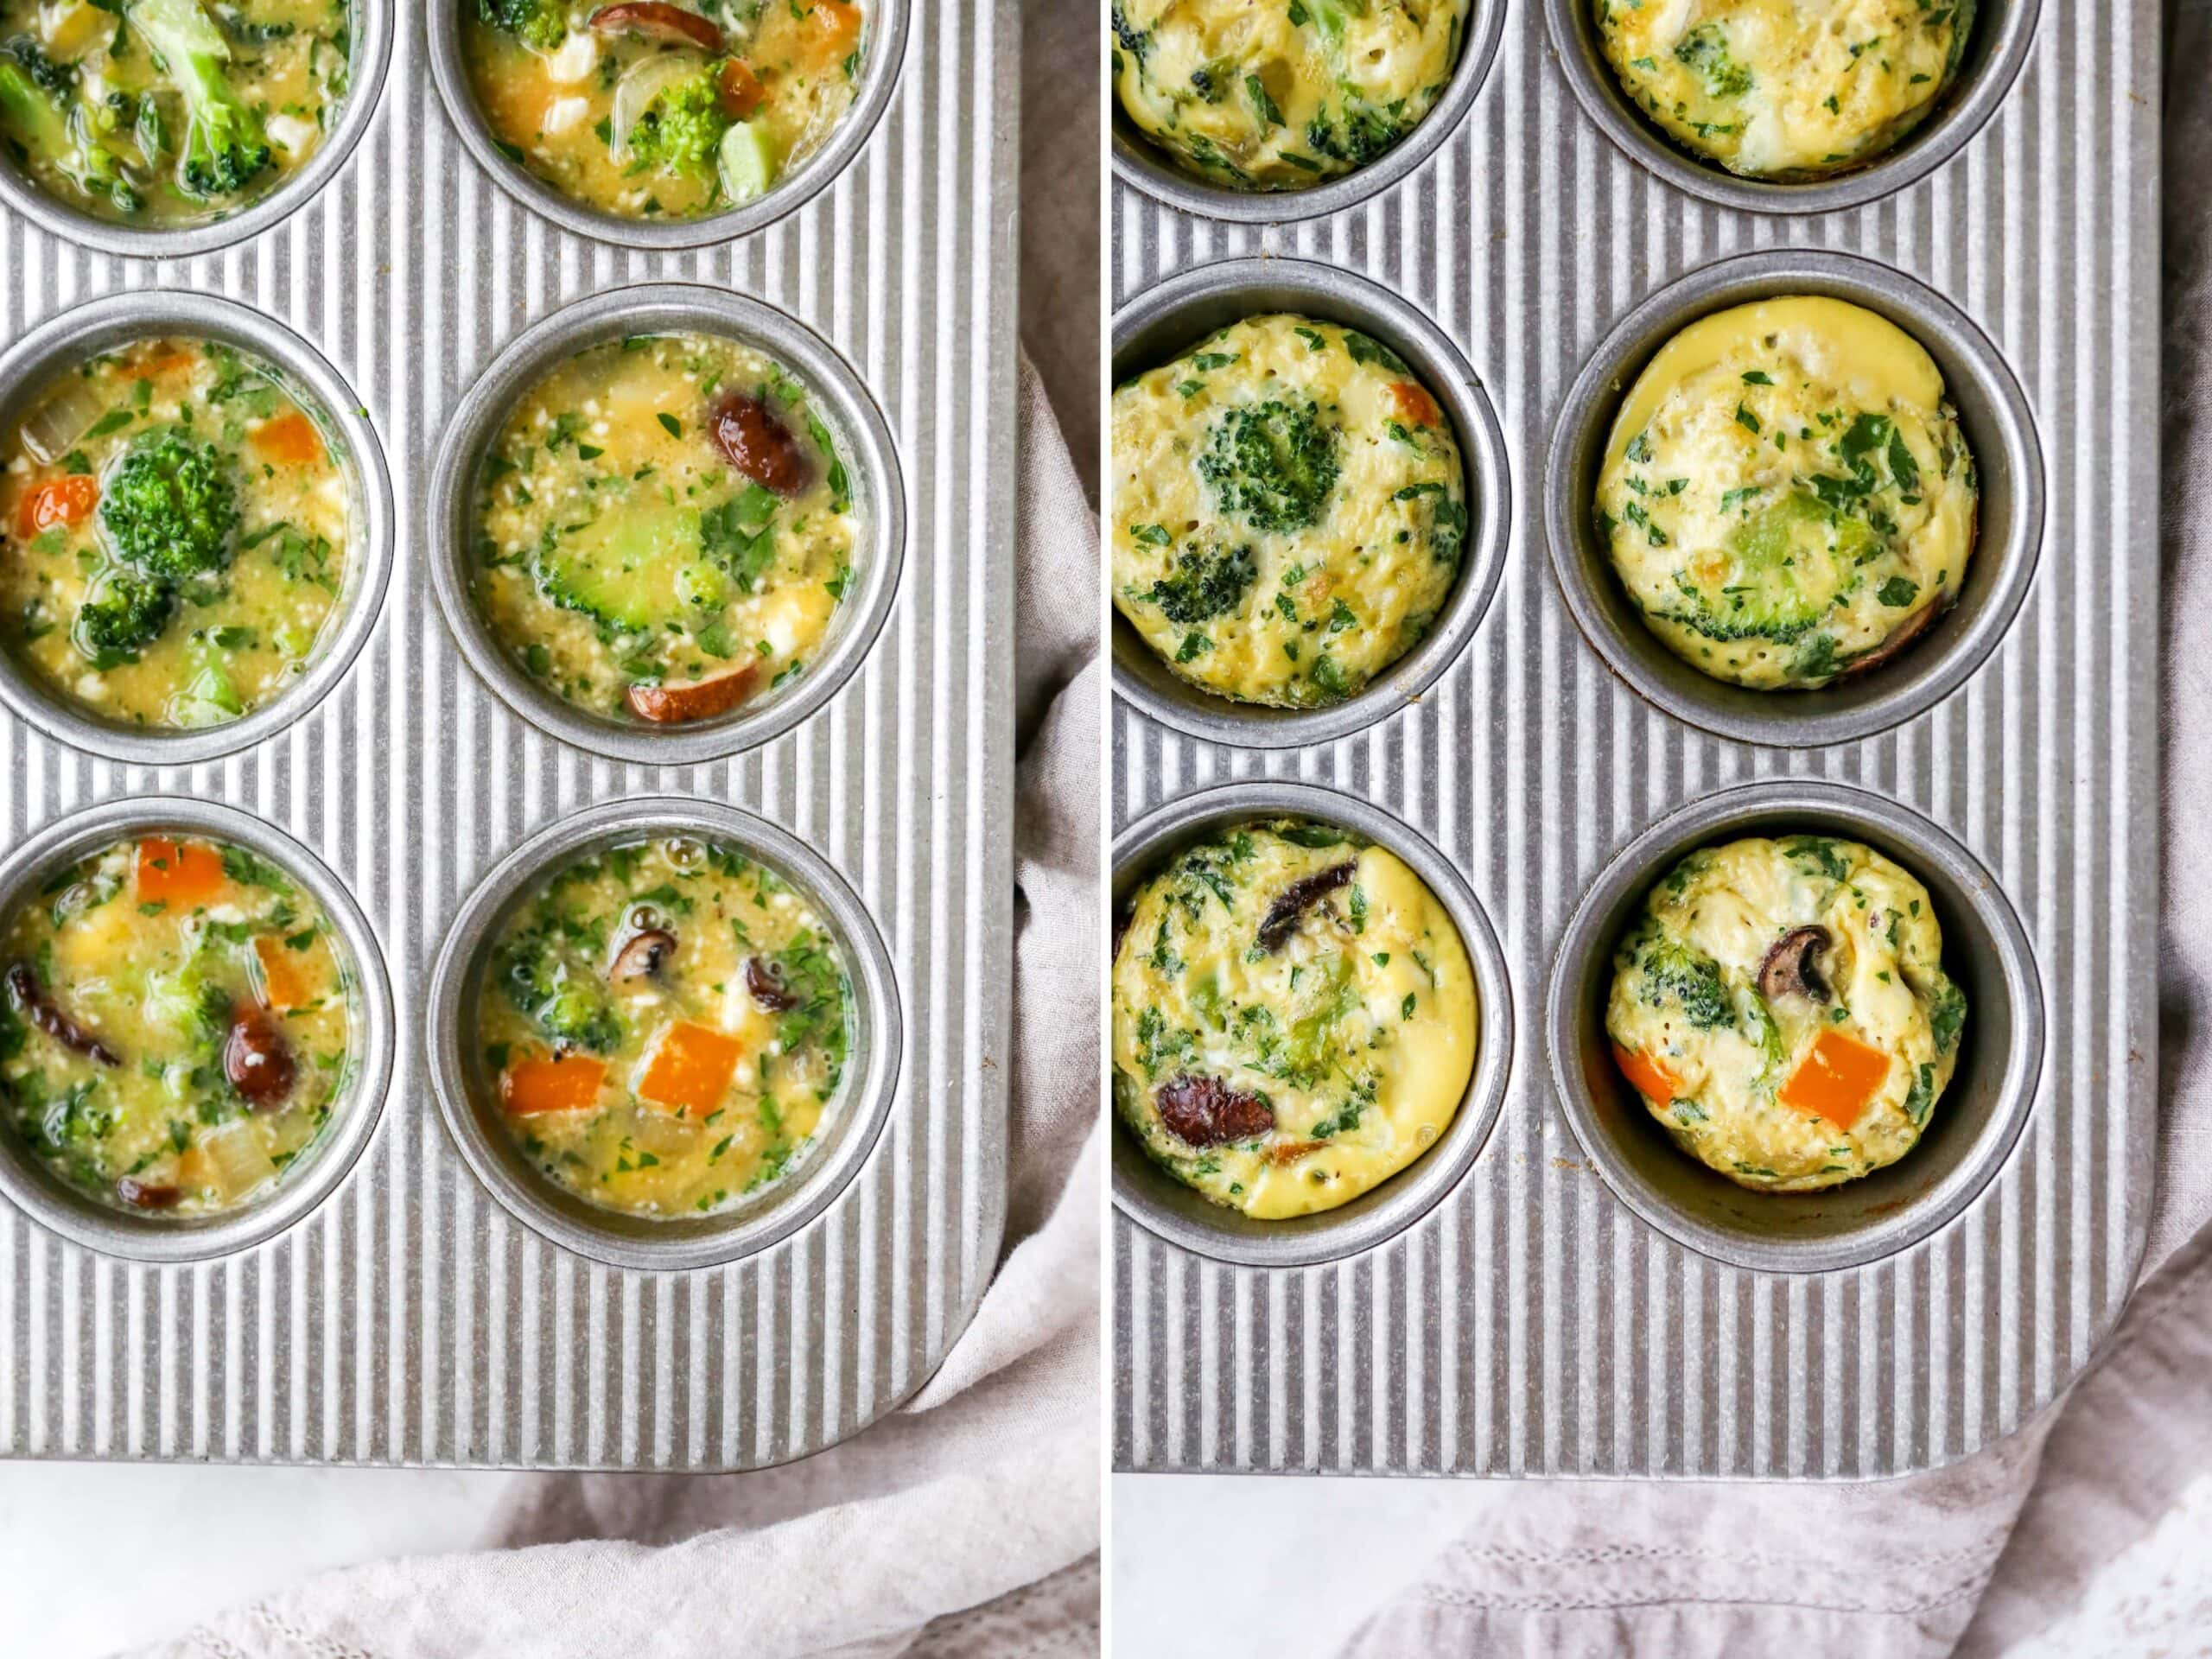 Side by side photos. Egg and veggie mixture in a muffin tin before and after being baked.